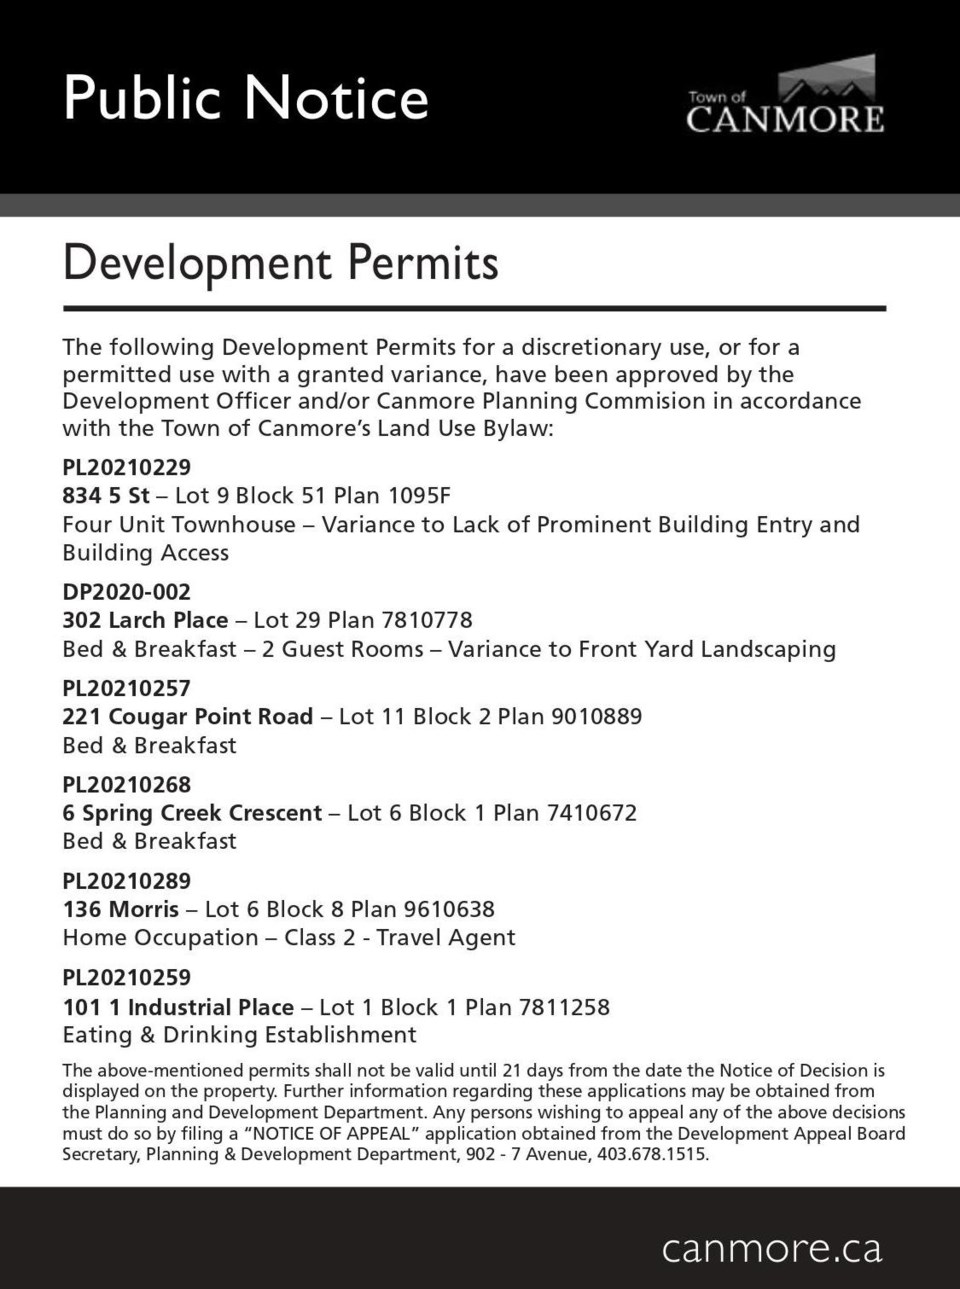 PUBLIC NOTICE – Town of Canmore development permits – August 26, 2021